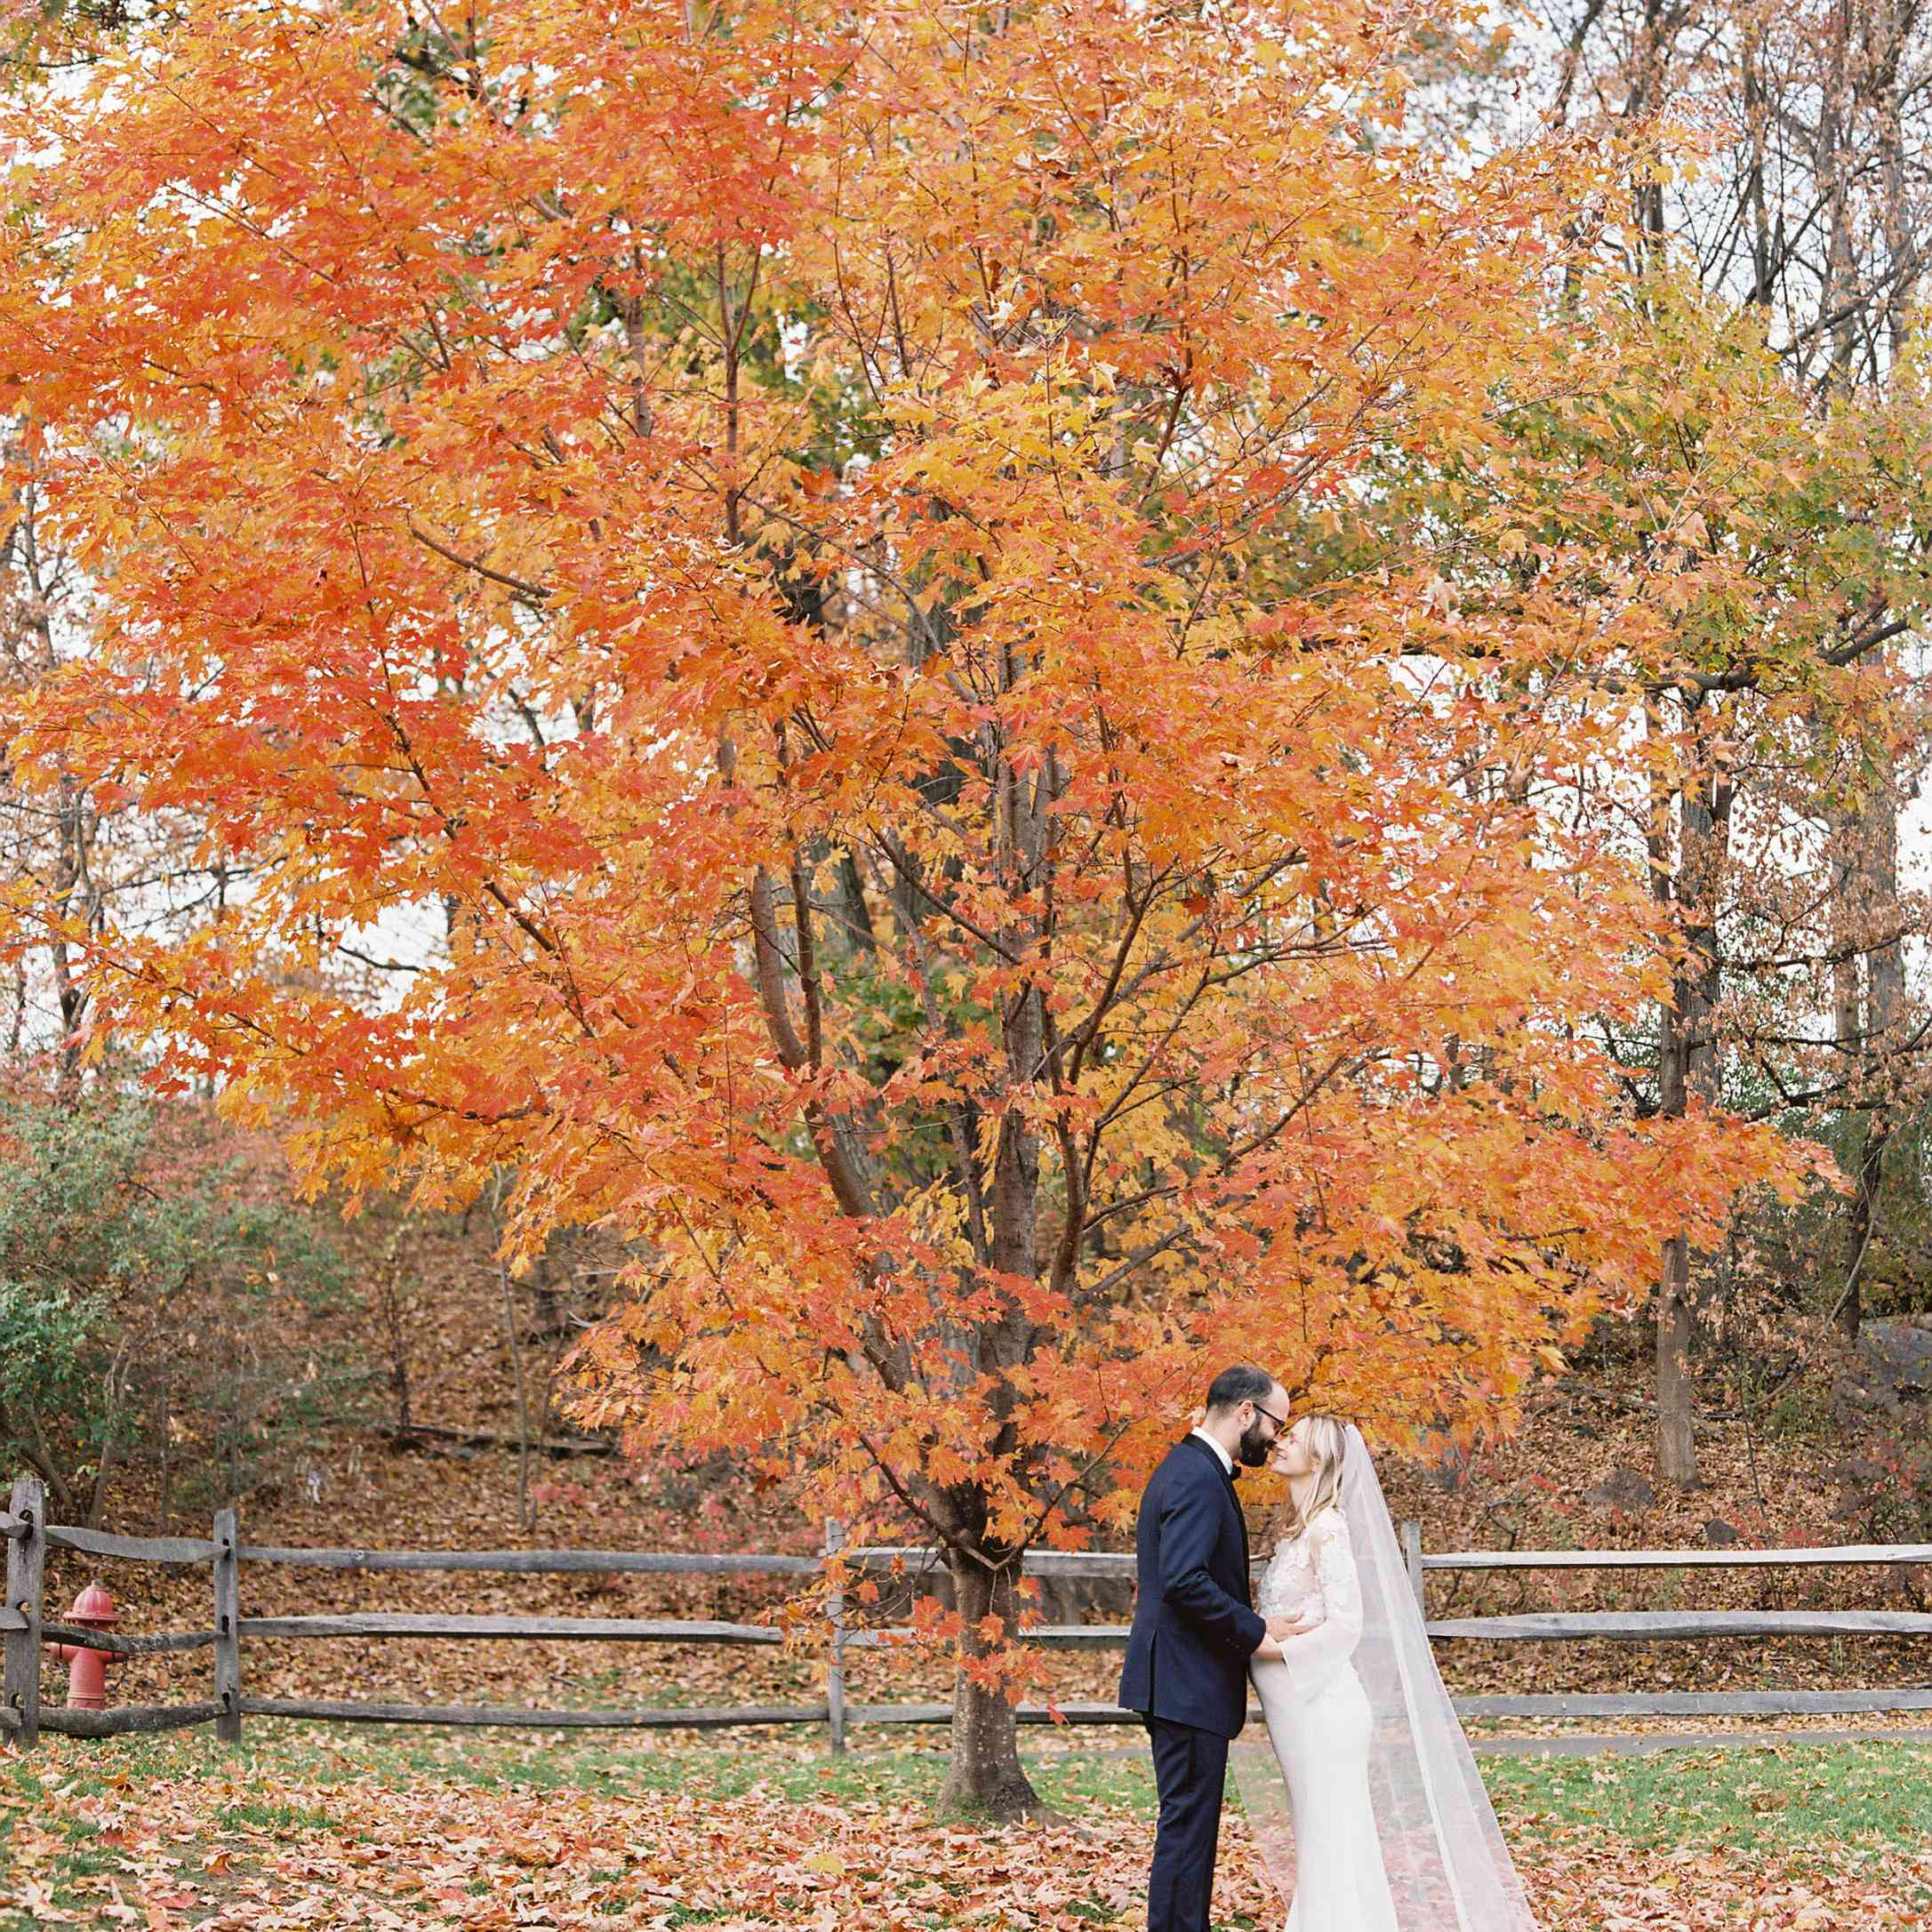 <p>Bride and groom kissing under fall foliage</p><br><br>